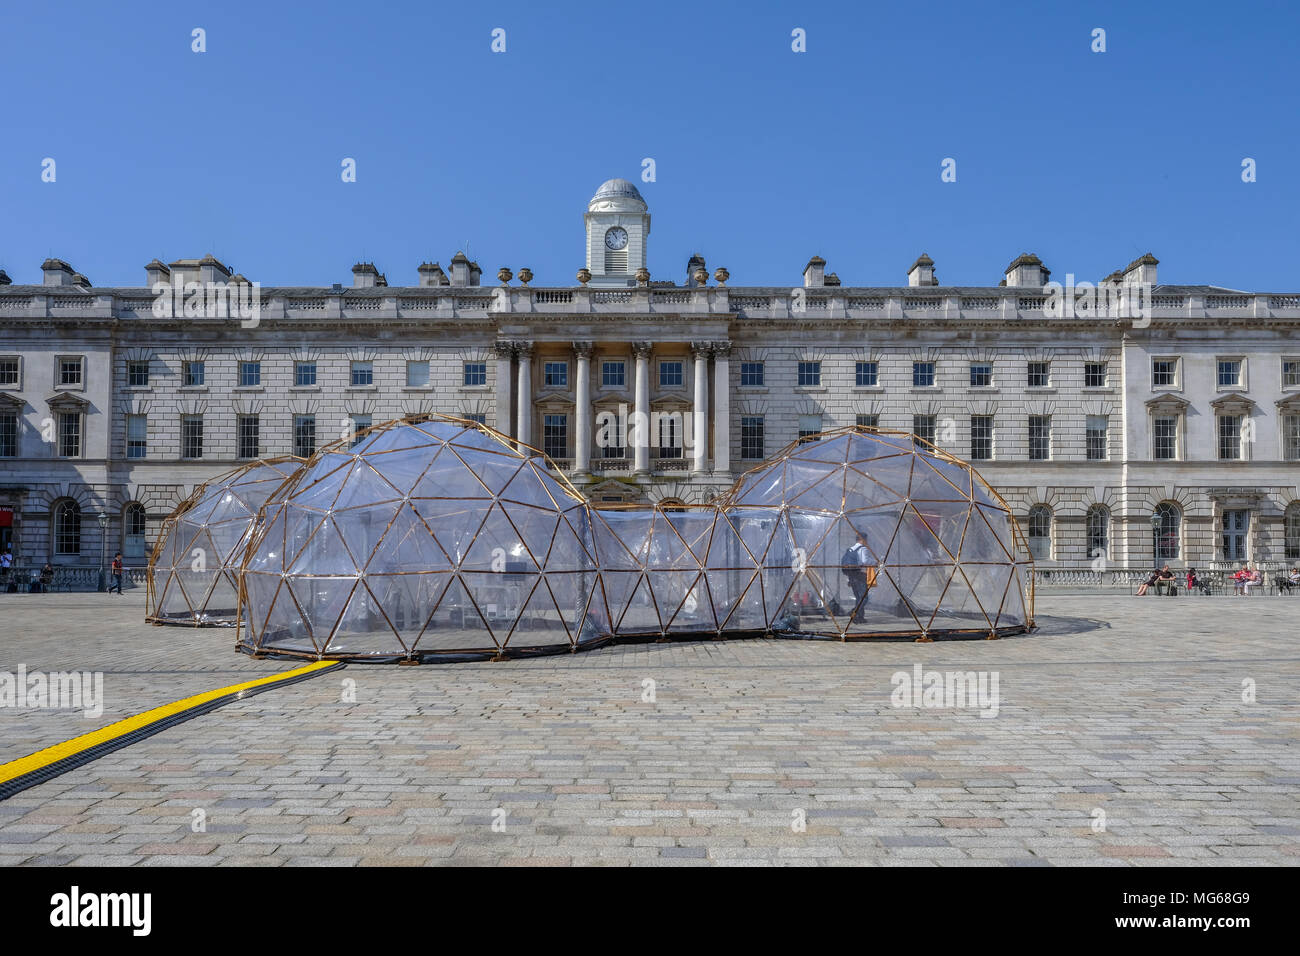 SOMERSET HOUSE, LONDON, UK - APRIL 22nd 2018: Pinksy  Pollution Pod exhibit in the centre of the square inside Somerset House. Stock Photo